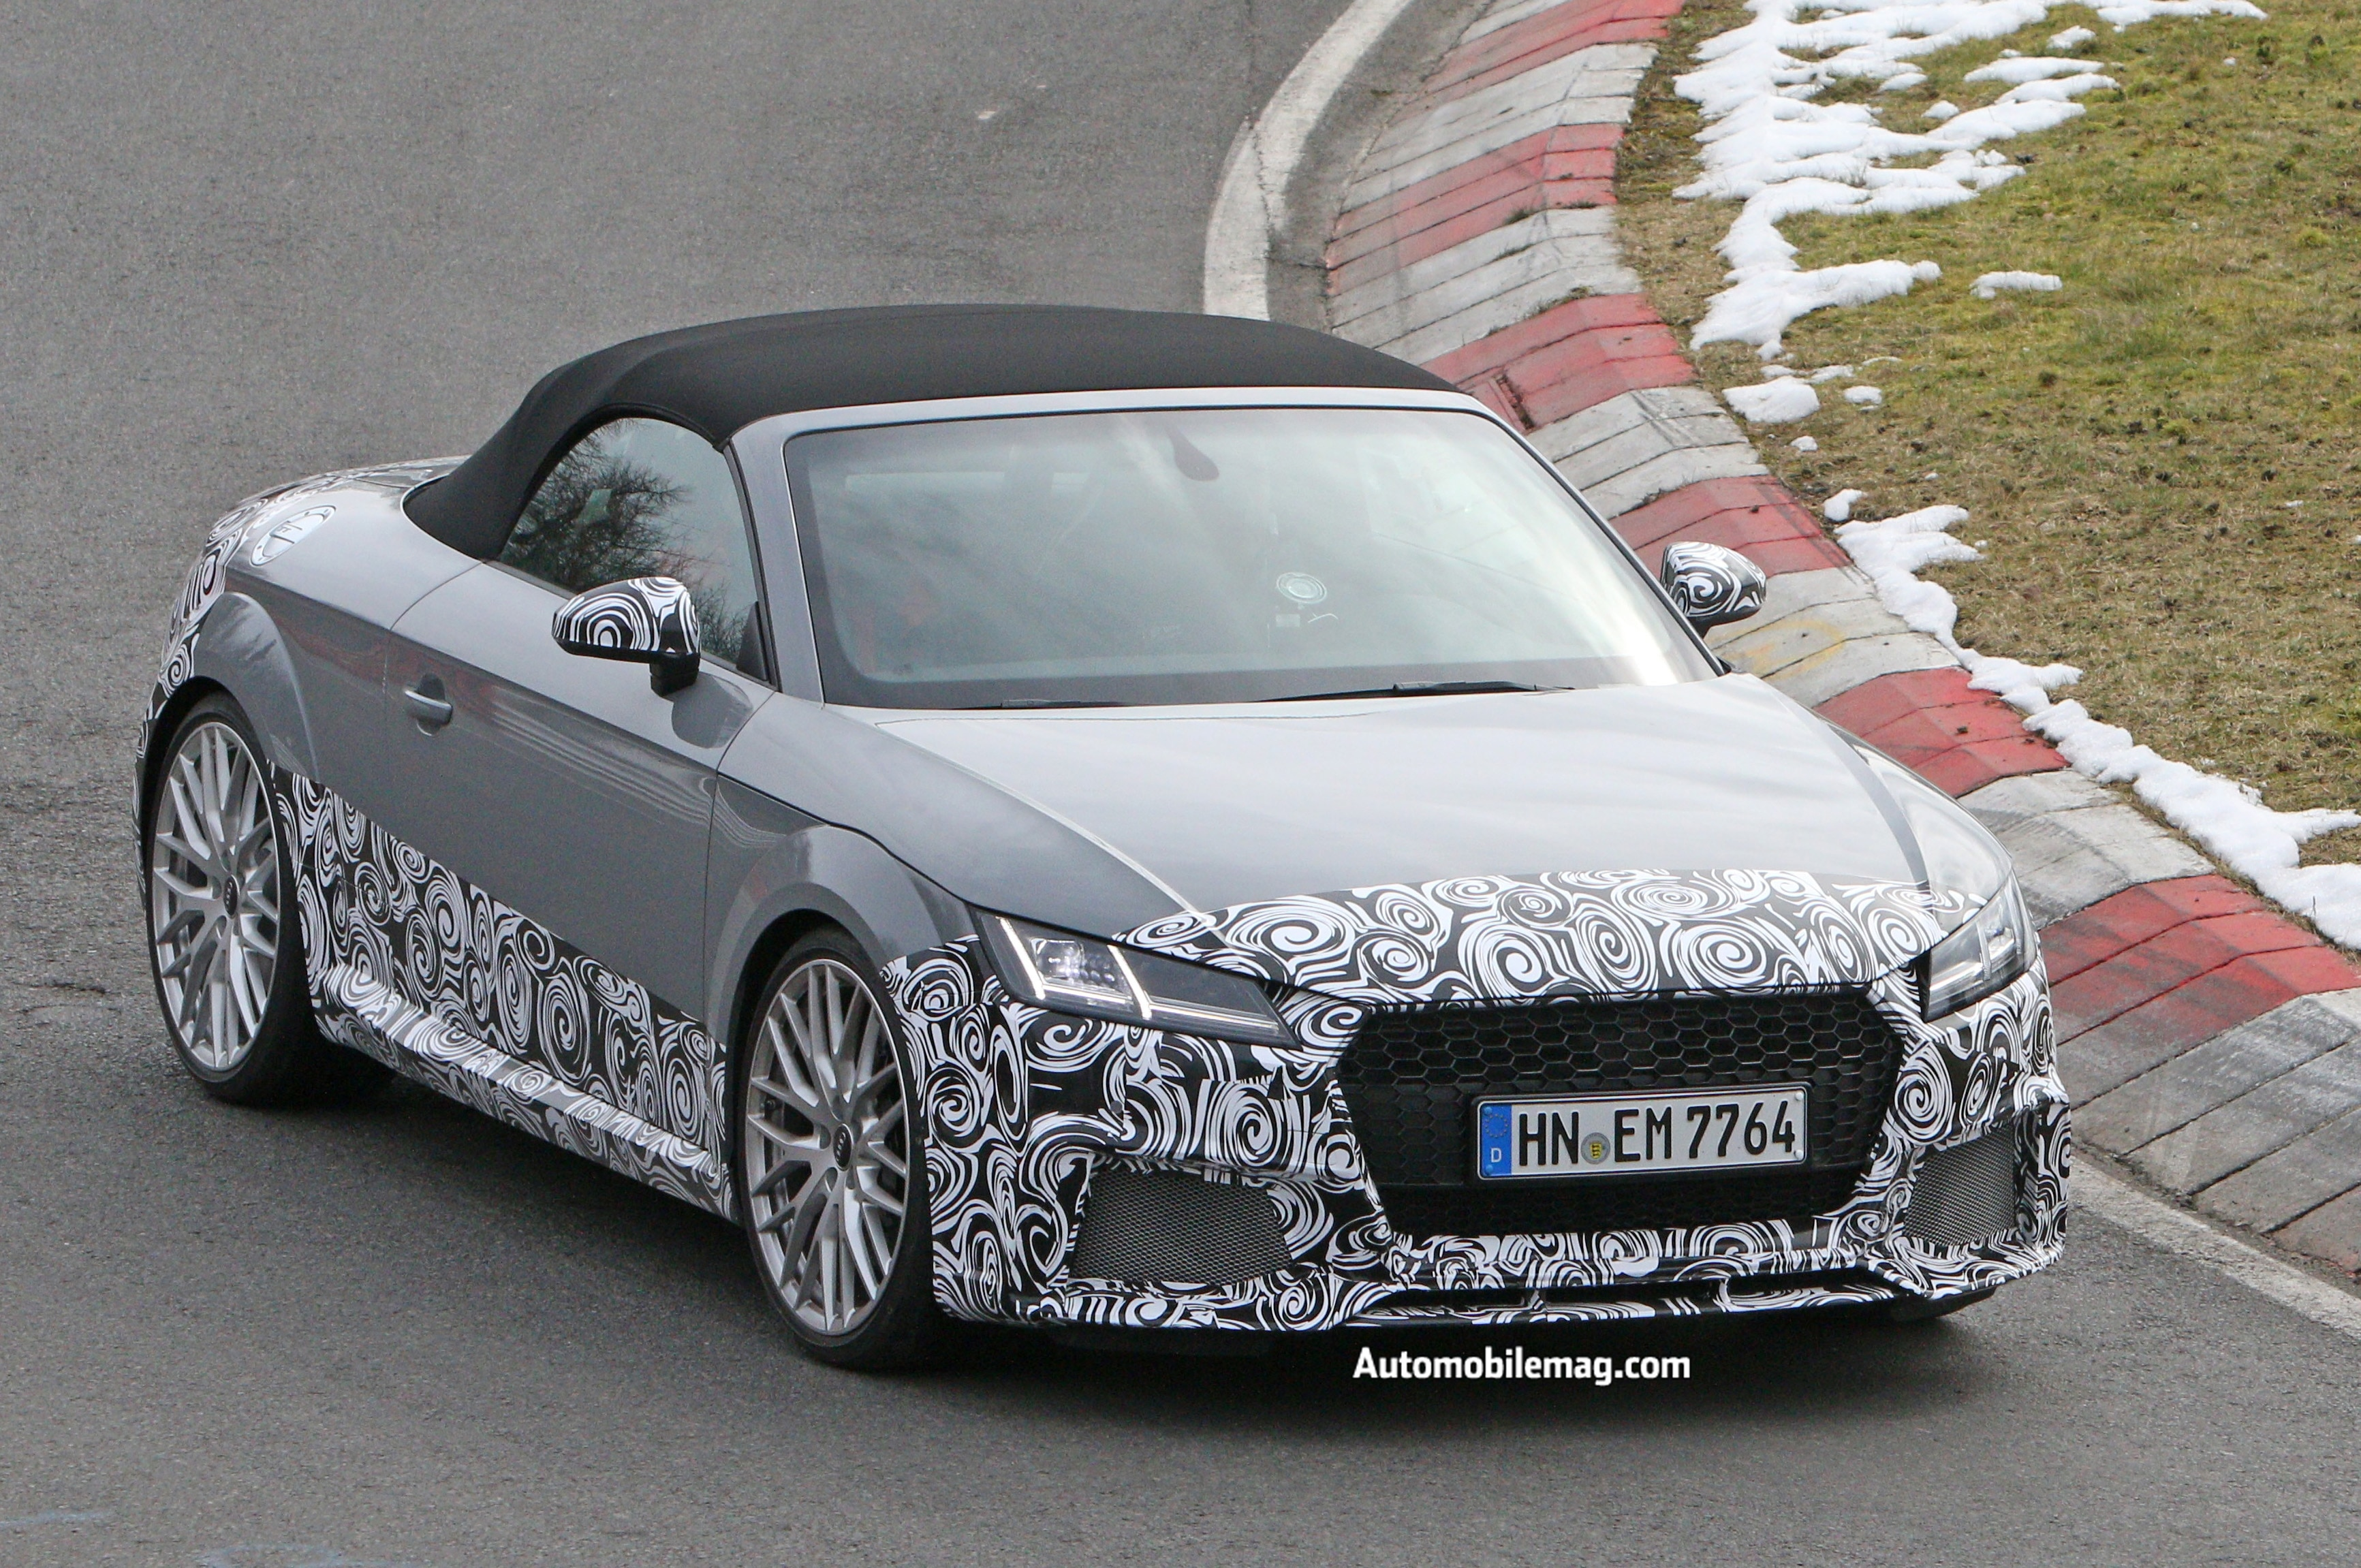 audi tt rs cabriolet spied testing at nurburgring automobile magazine. Black Bedroom Furniture Sets. Home Design Ideas